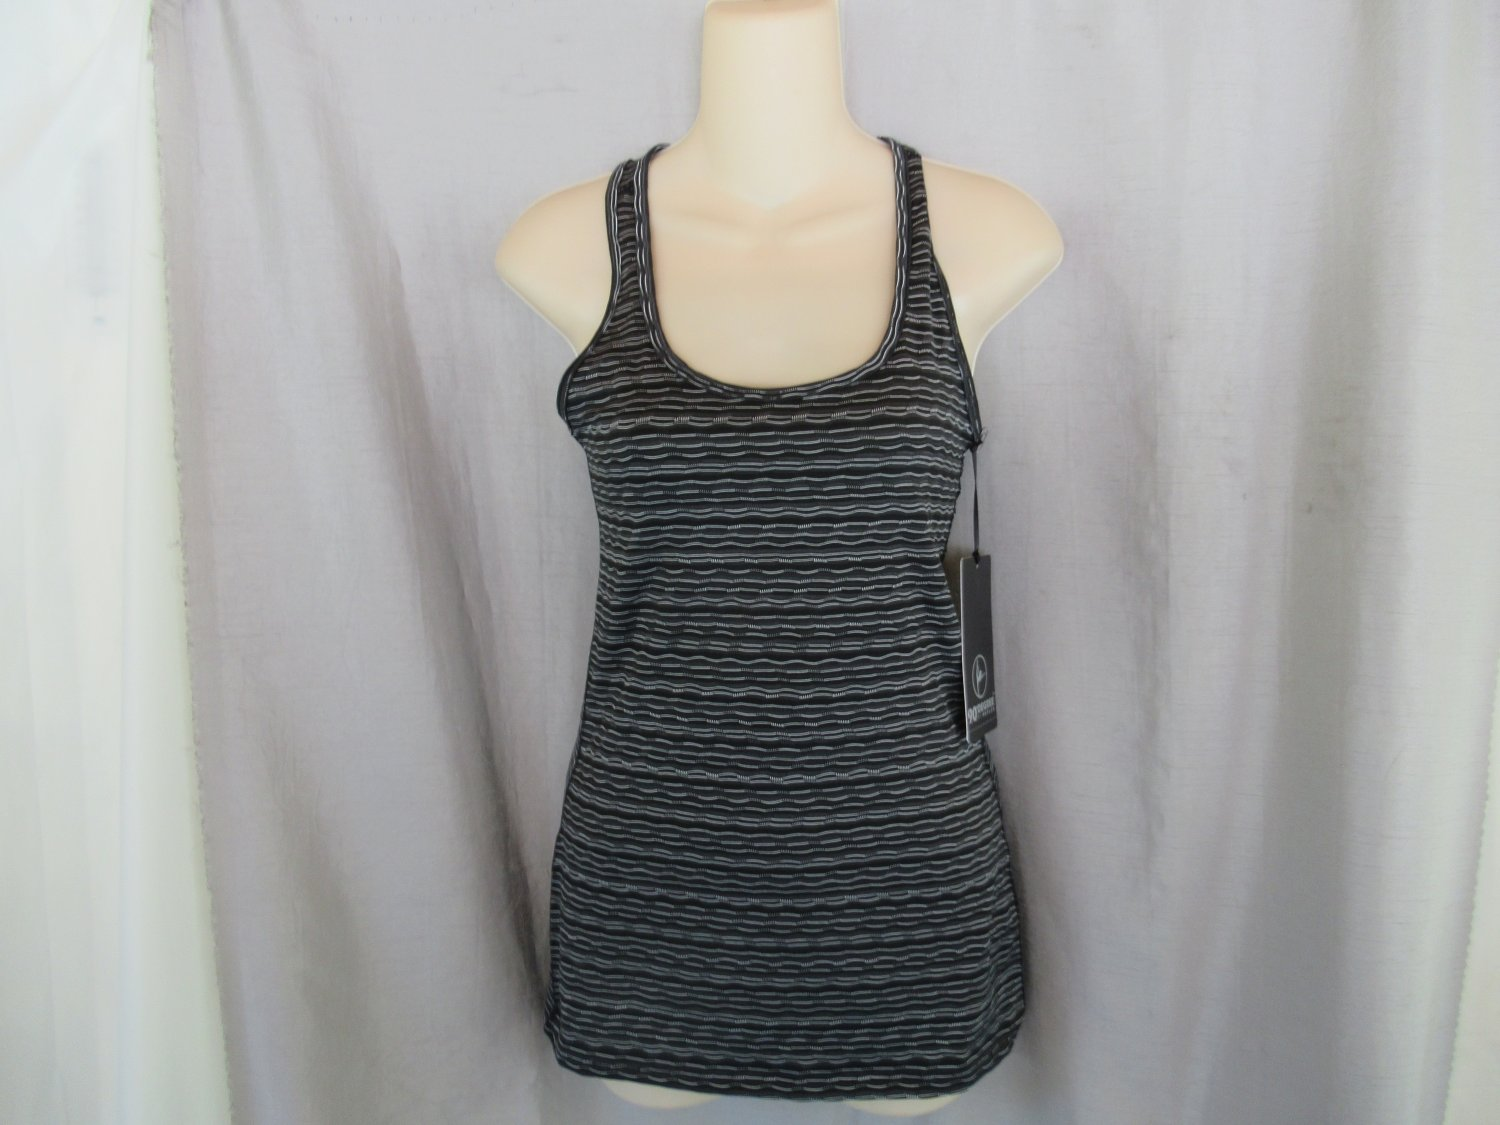 New 90 Degree by Reflex tank top Small black combo racerback TW13030